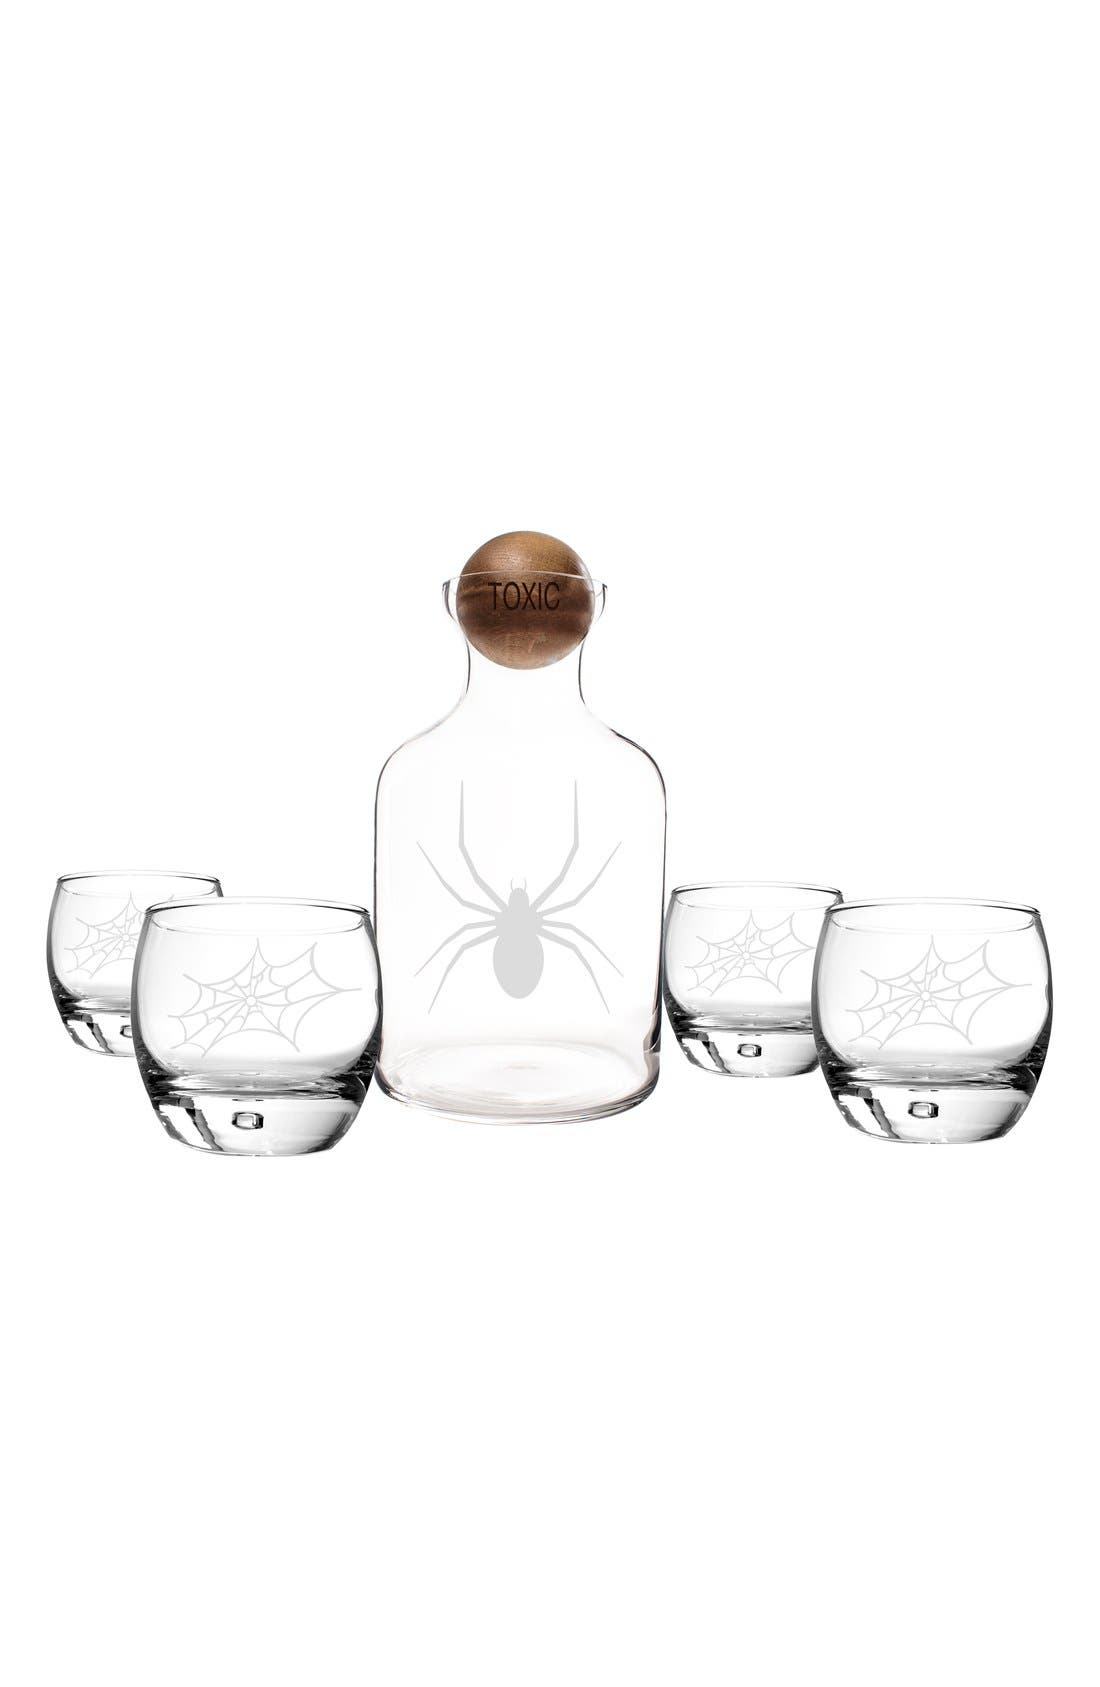 'Toxic Spider' 6-Piece Glass Decanter Set,                             Alternate thumbnail 3, color,                             100